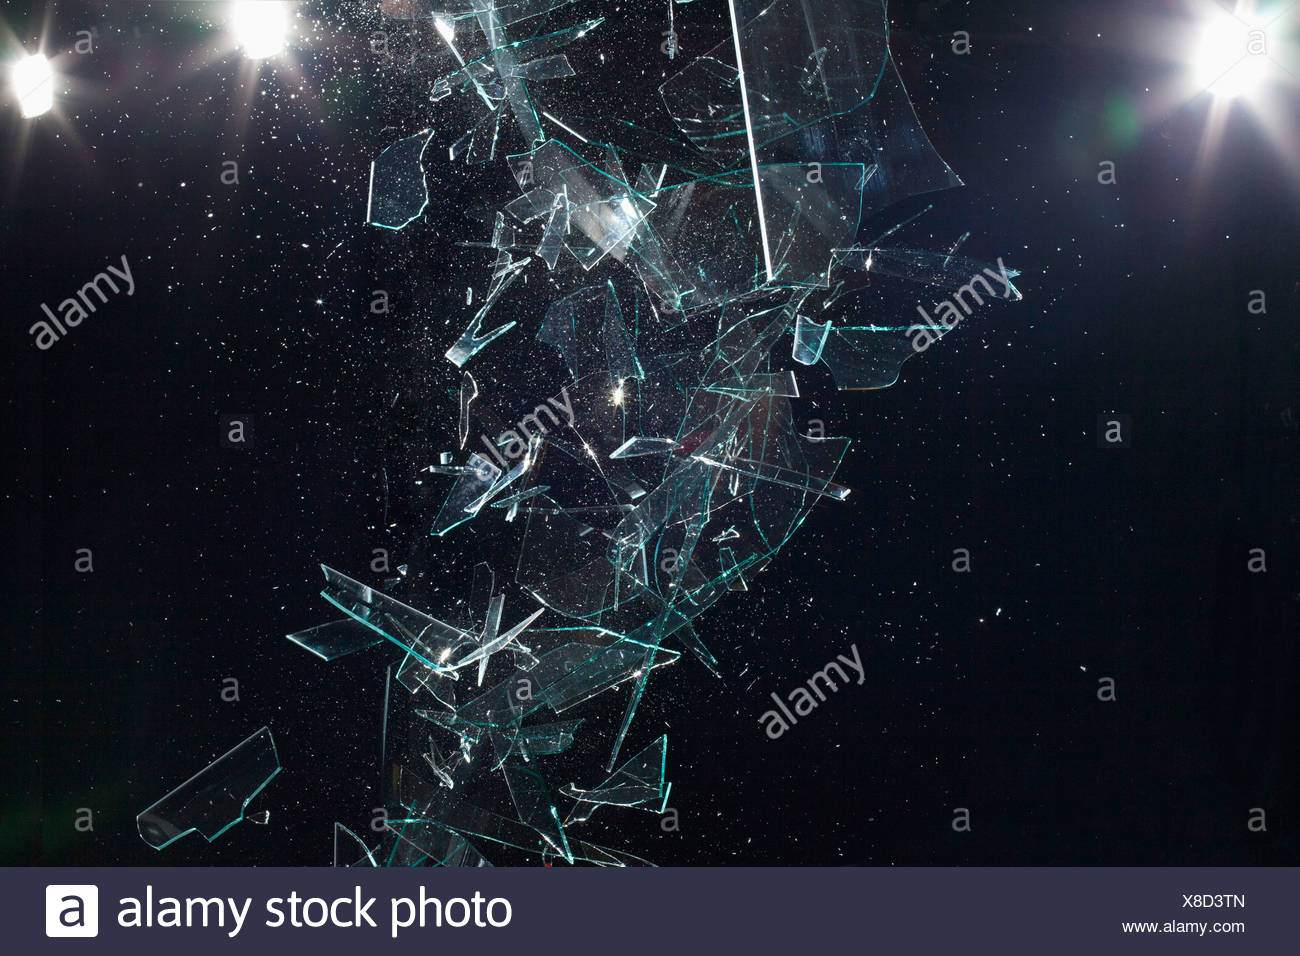 Shattered glass mid-air - Stock Image